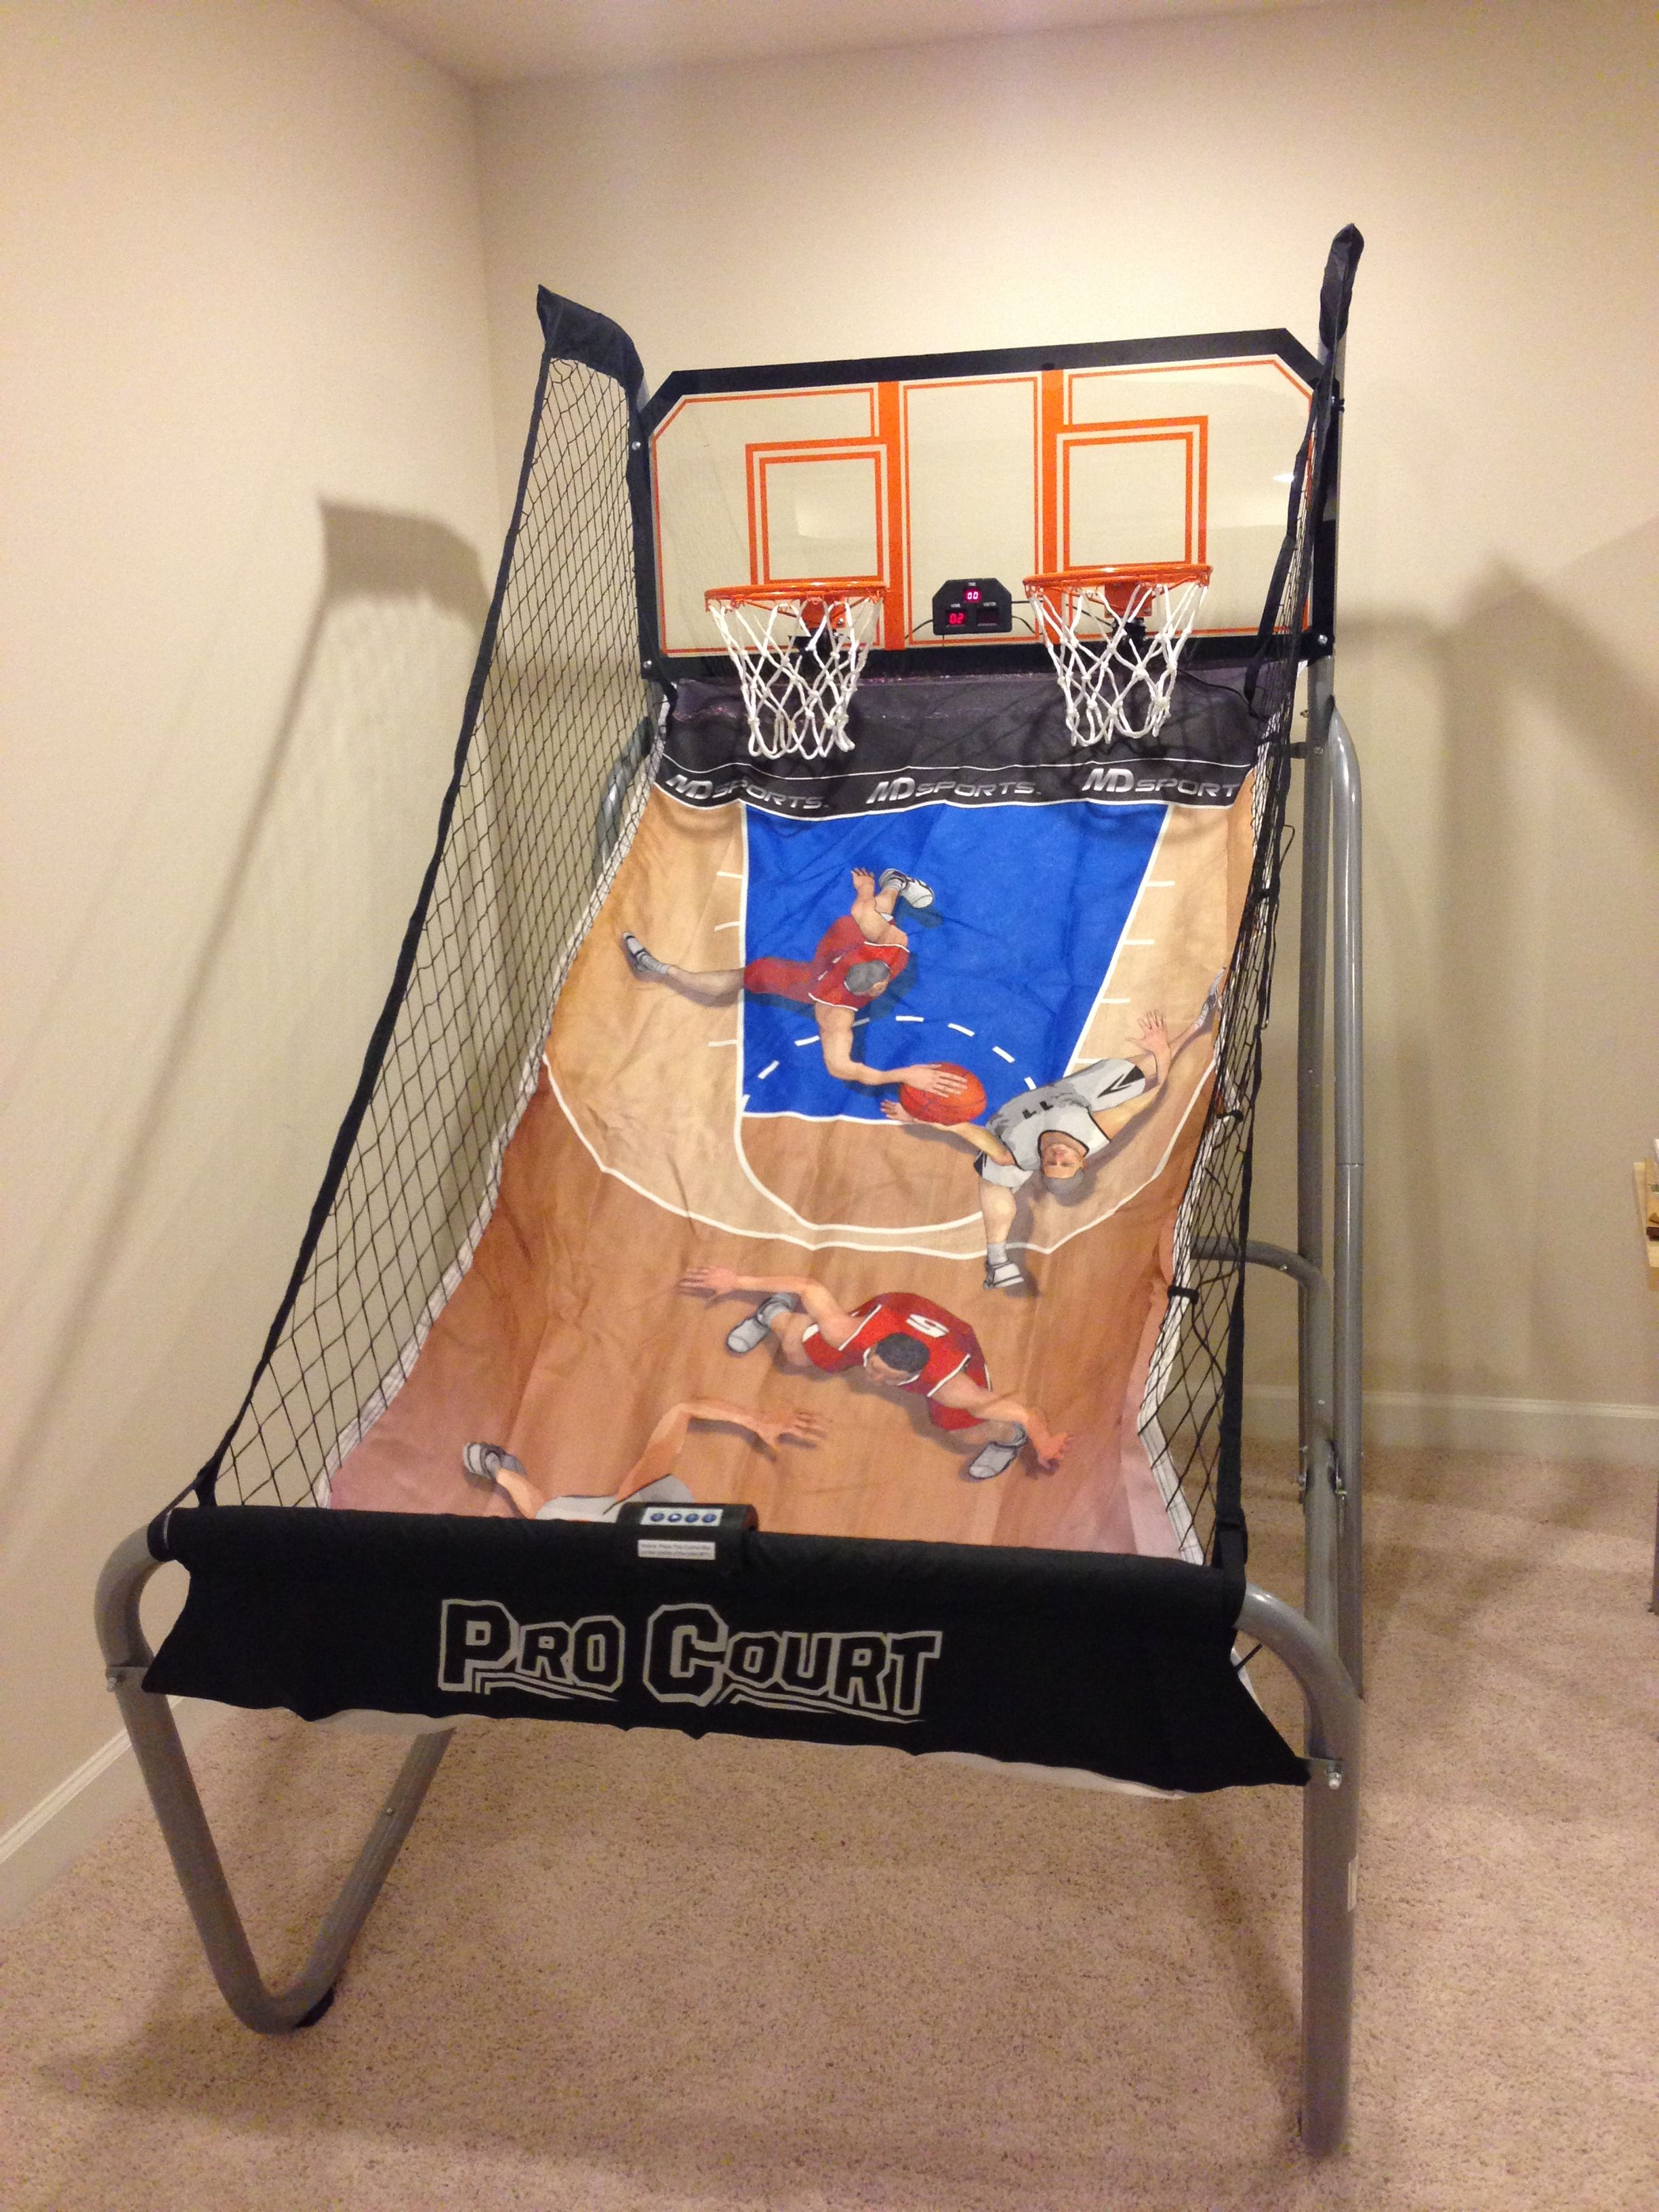 Pro Court Basketball Game Scoring System Air Hockey Table Games